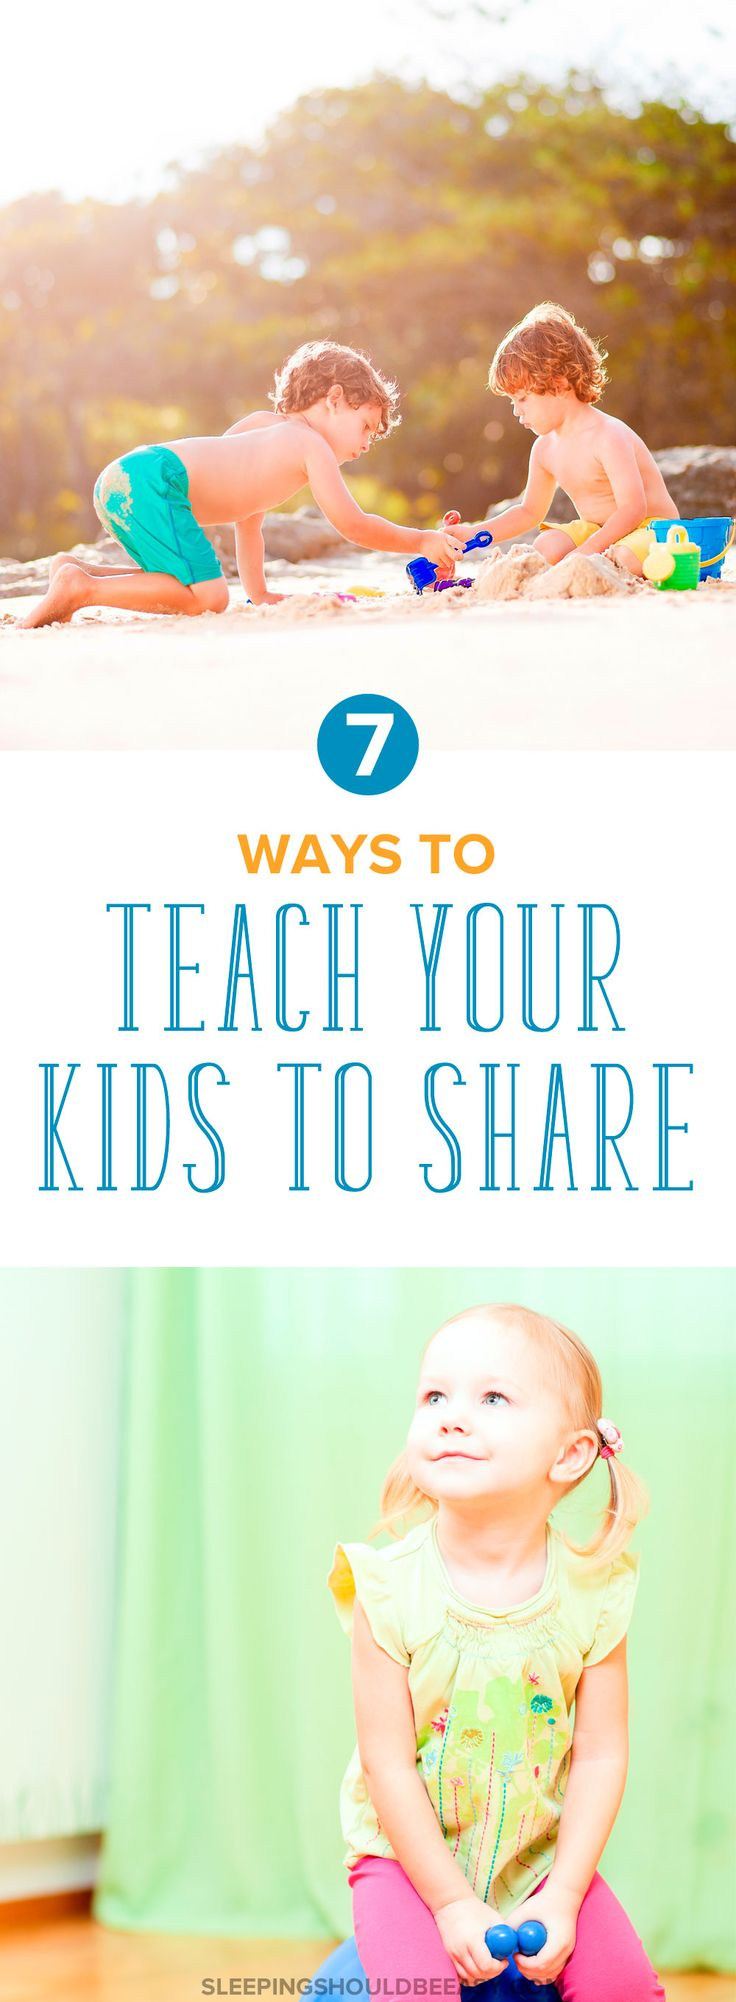 Looking for tips on how to teach toddler to share toys? Not sharing with other kids and family members is common with toddlers, but you can still encourage and teach your toddler to share with 7 ways.